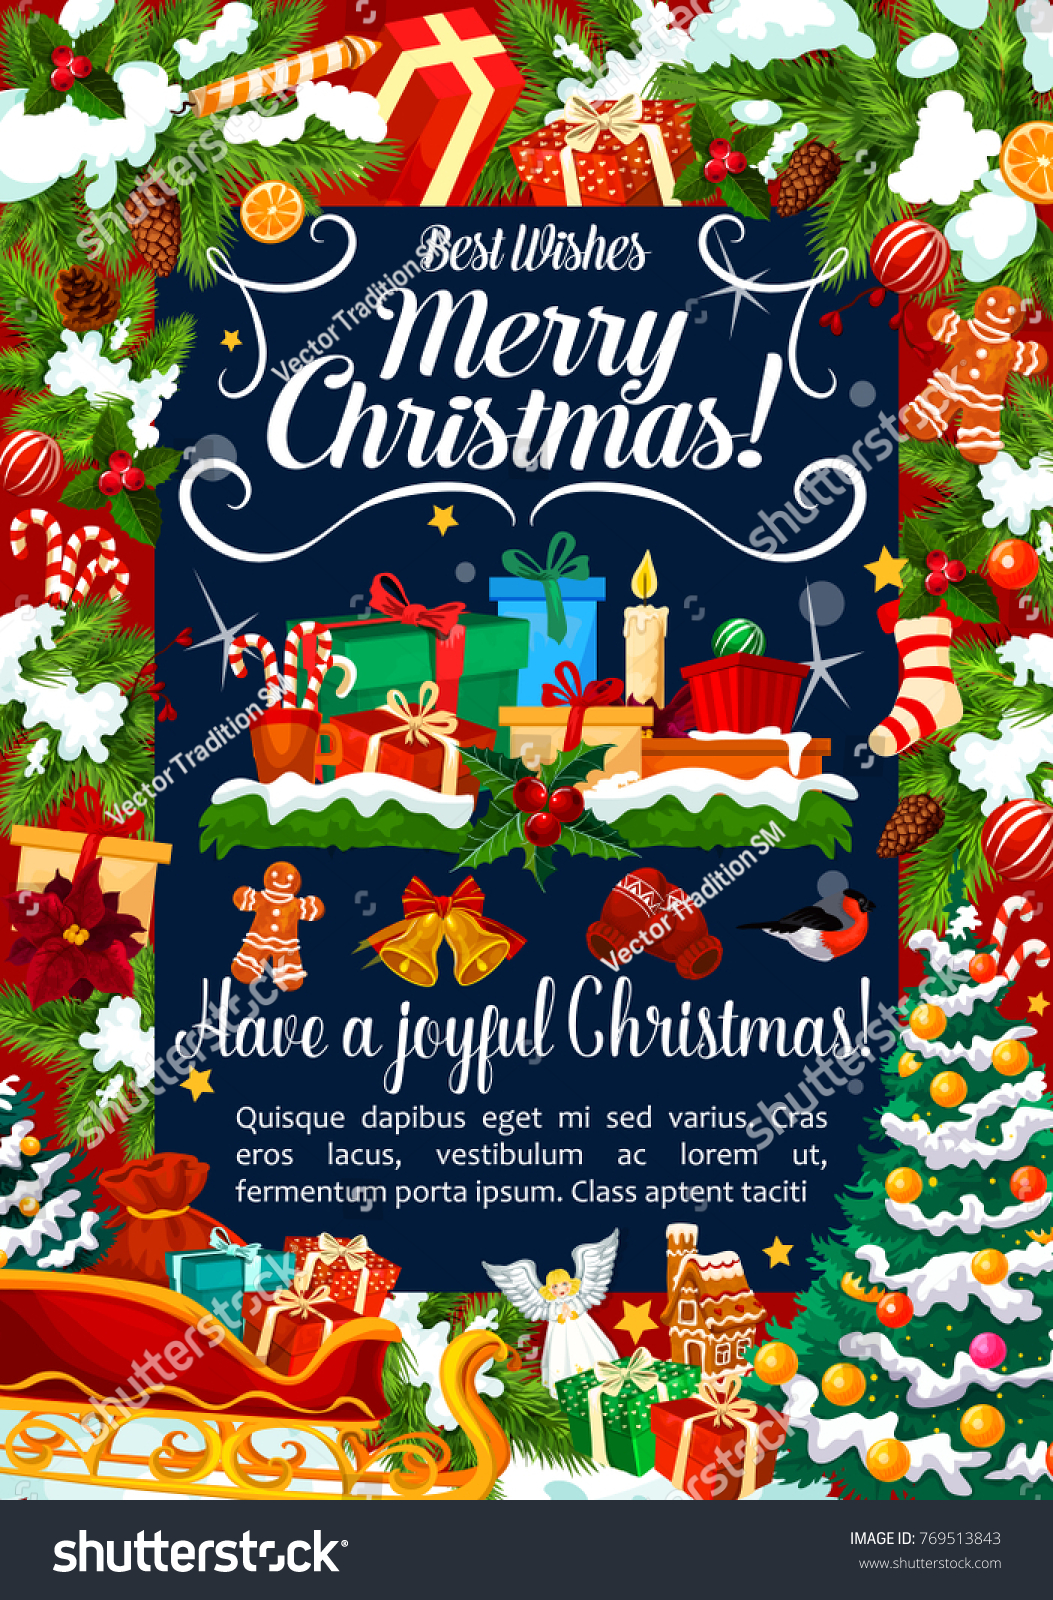 merry christmas best wishes greeting card design of santa gifts and new year decorations on christmas